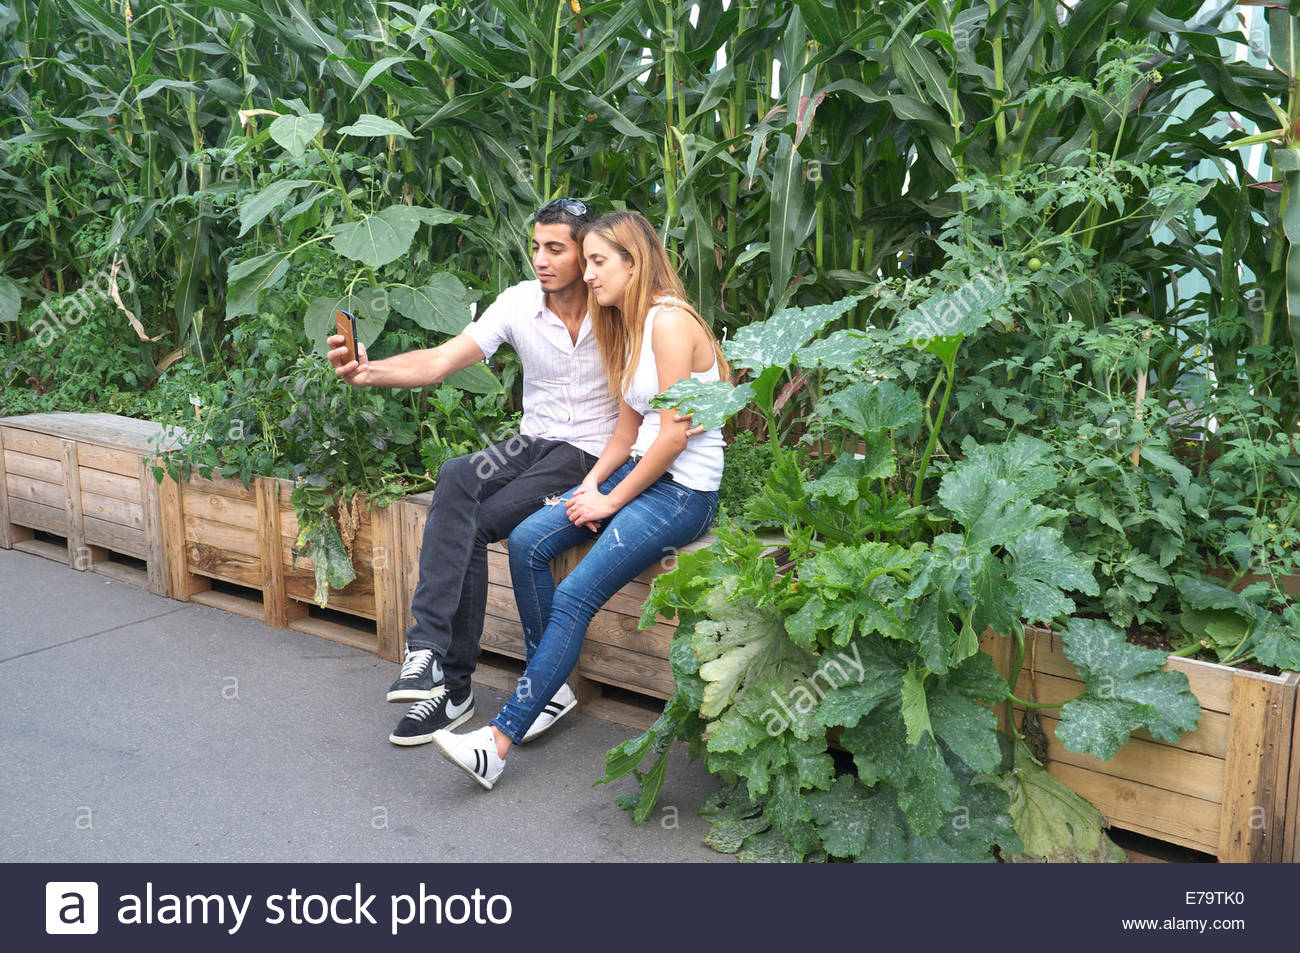 Two young Italian lovers take a selfie photograph using a smartphone, amongst an installation of corn plants at - Stock Image